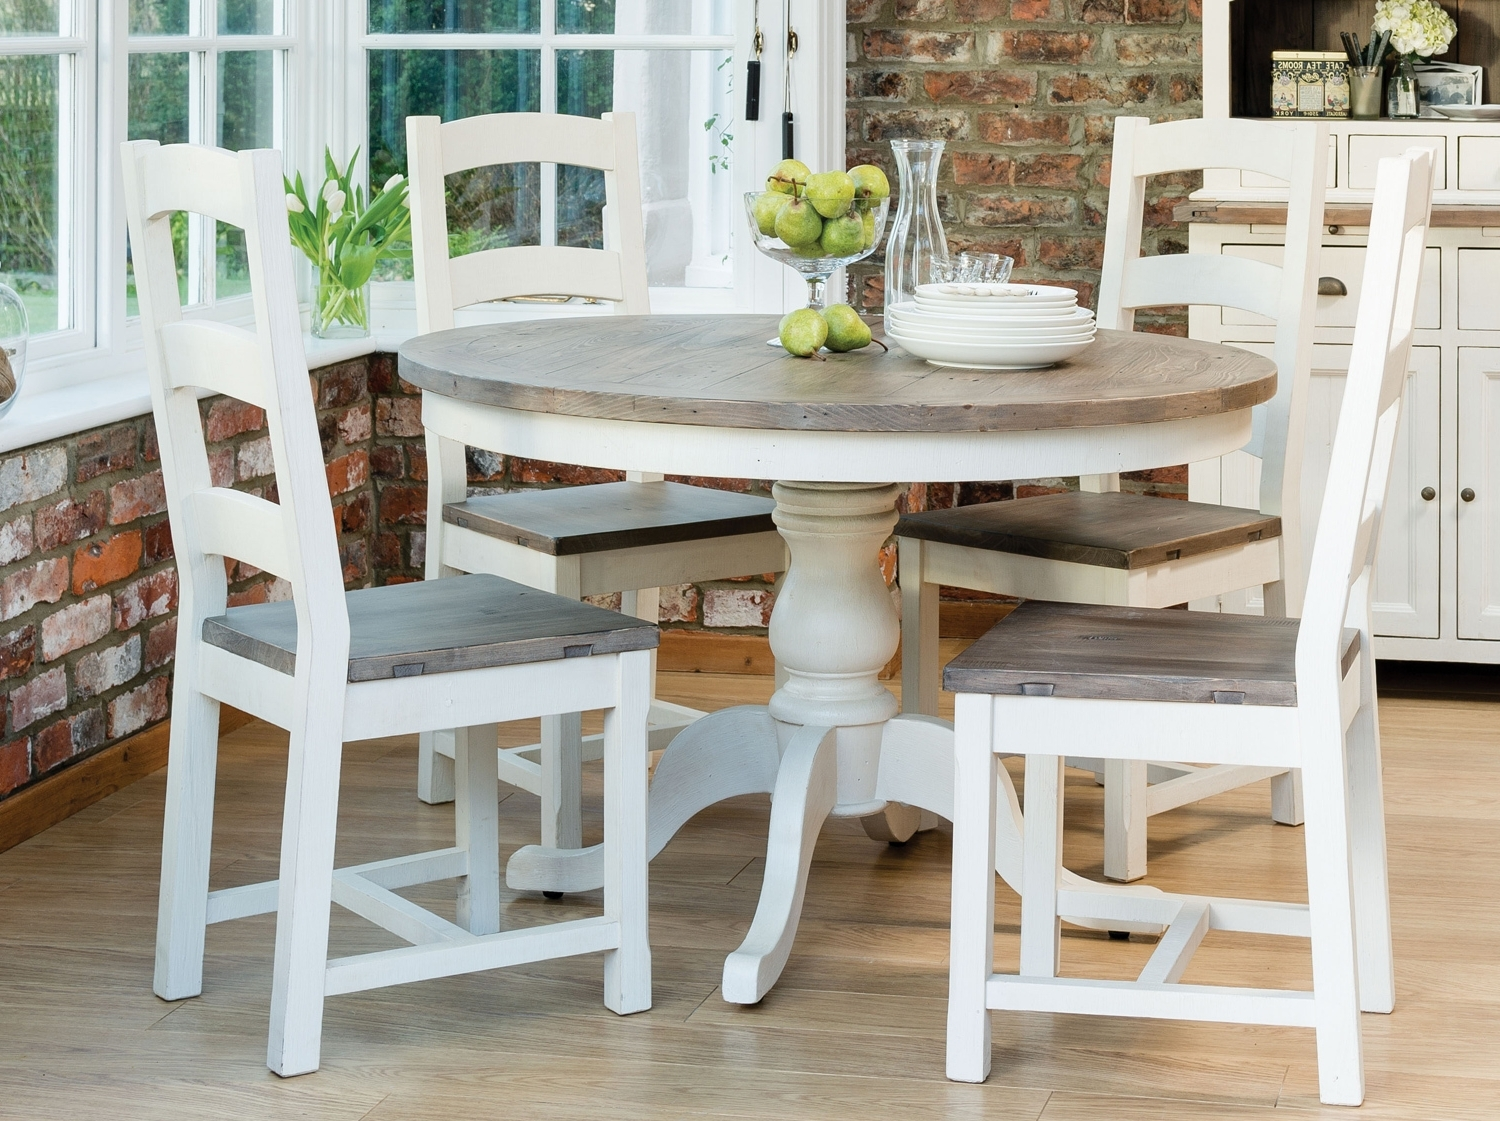 French Country Round Dining Table From Dansk Regarding Recent French Country Dining Tables (View 15 of 25)